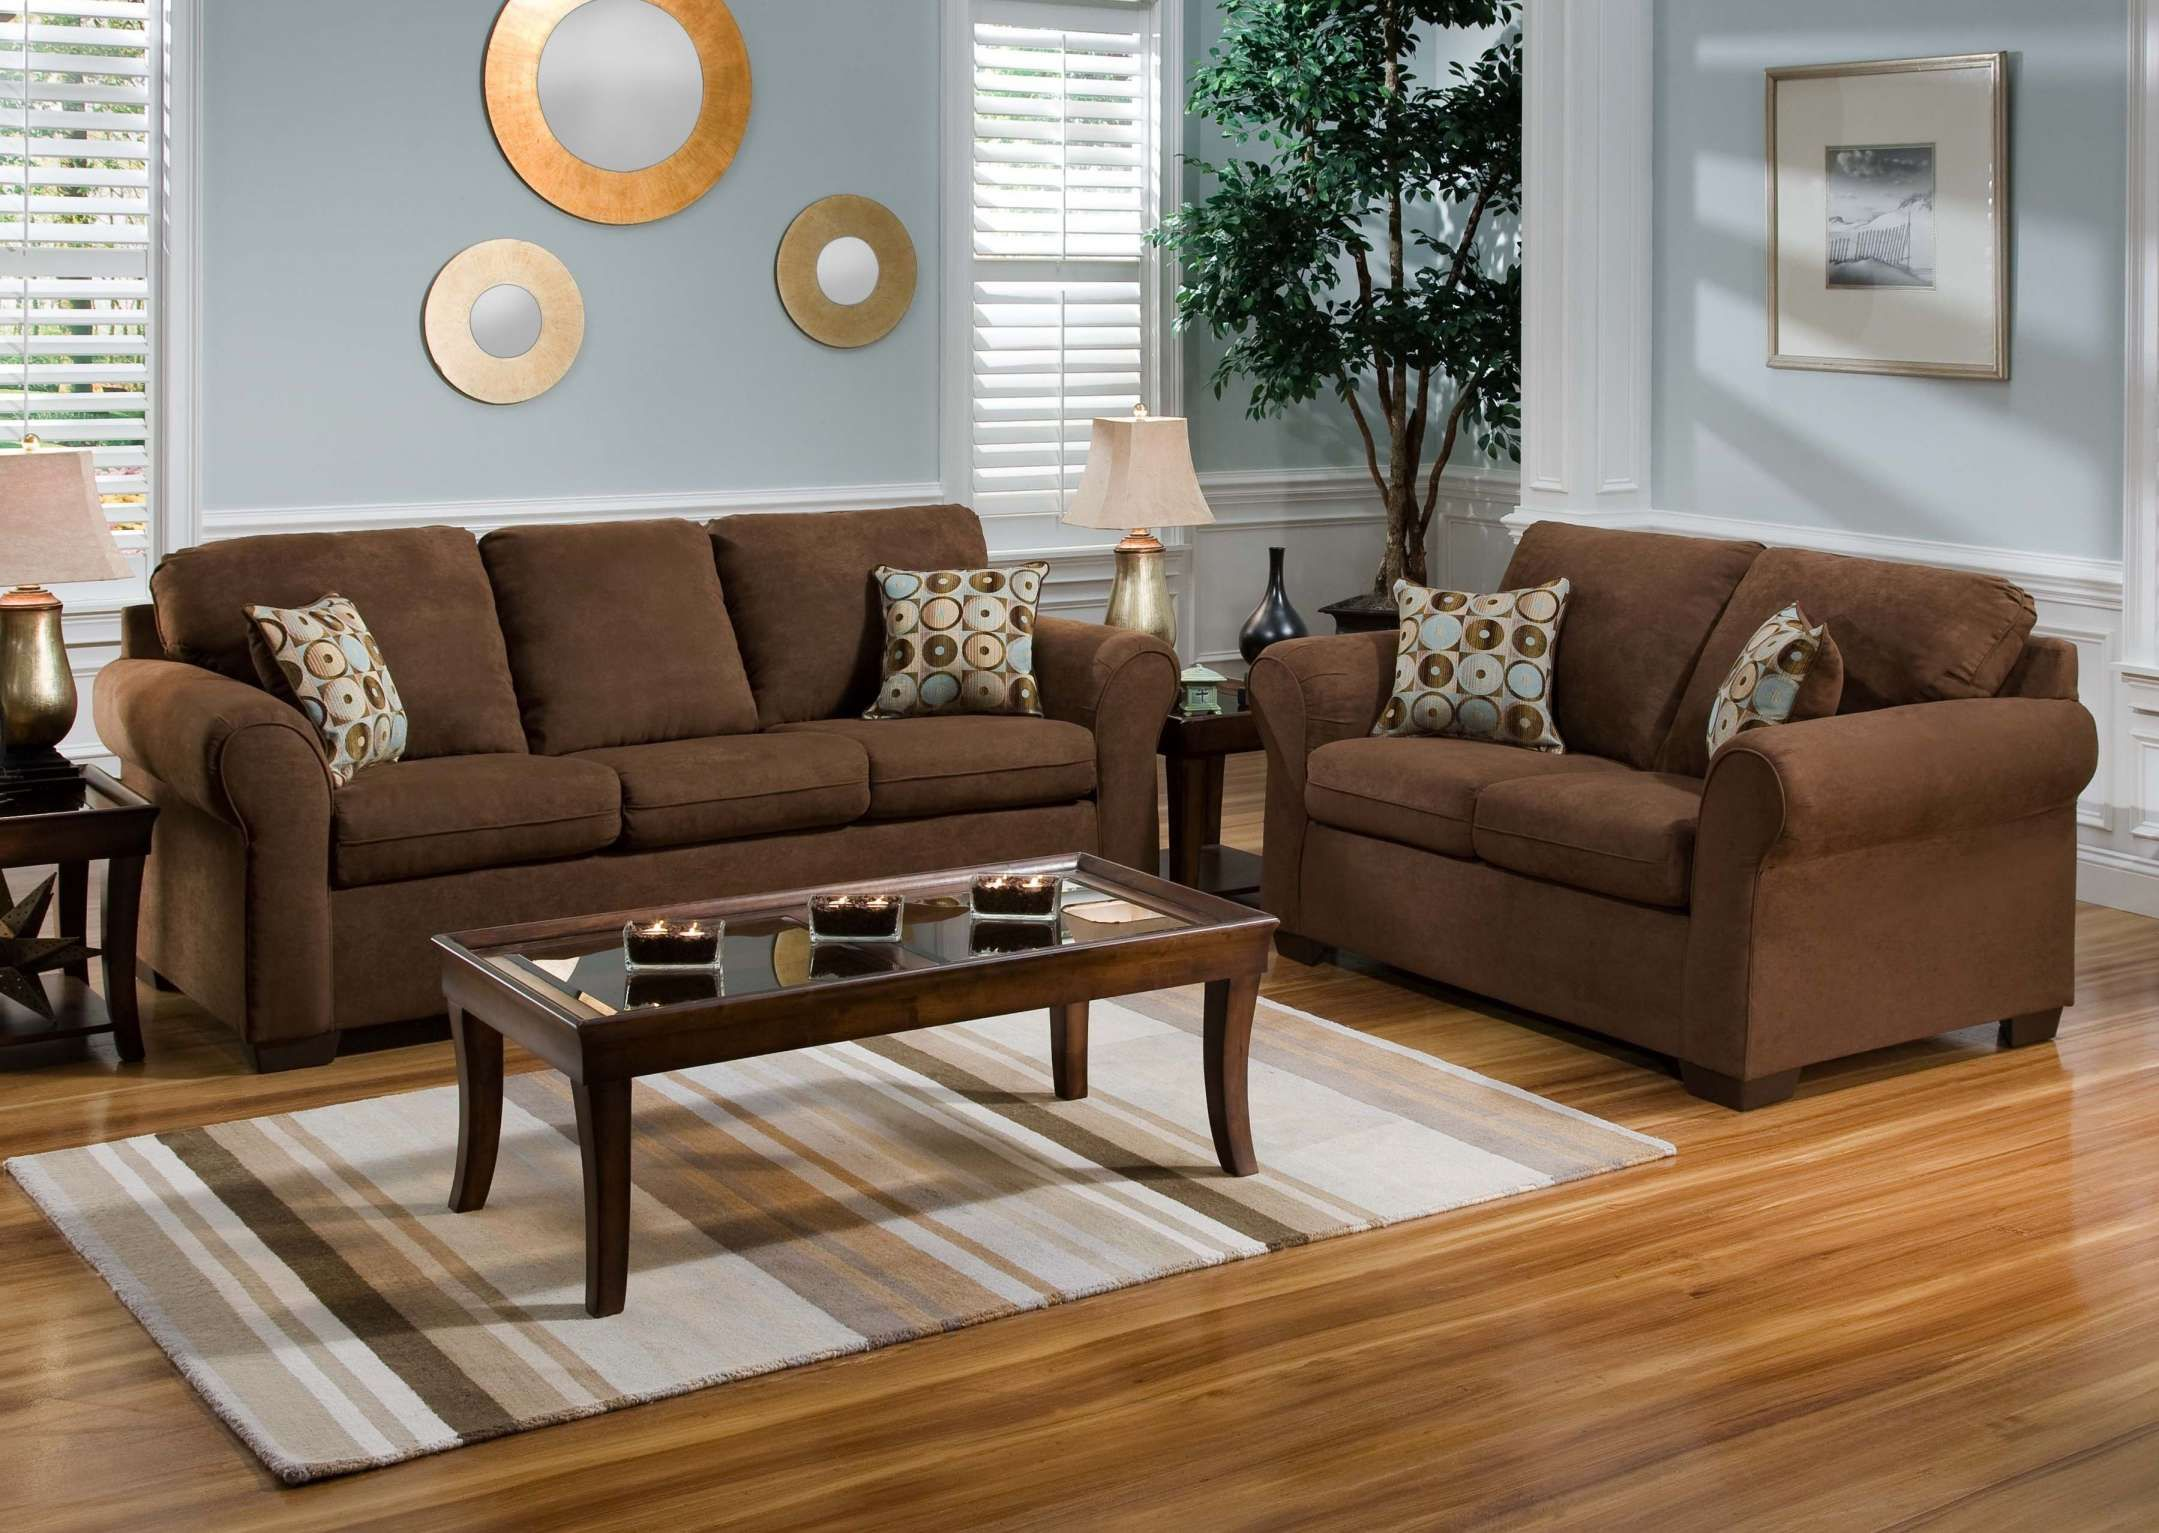 12 Awesome Living Room Color Scheme With Brown Furniture Collection Warm Living Room Colors Brown Living Room Decor Brown Furniture Living Room